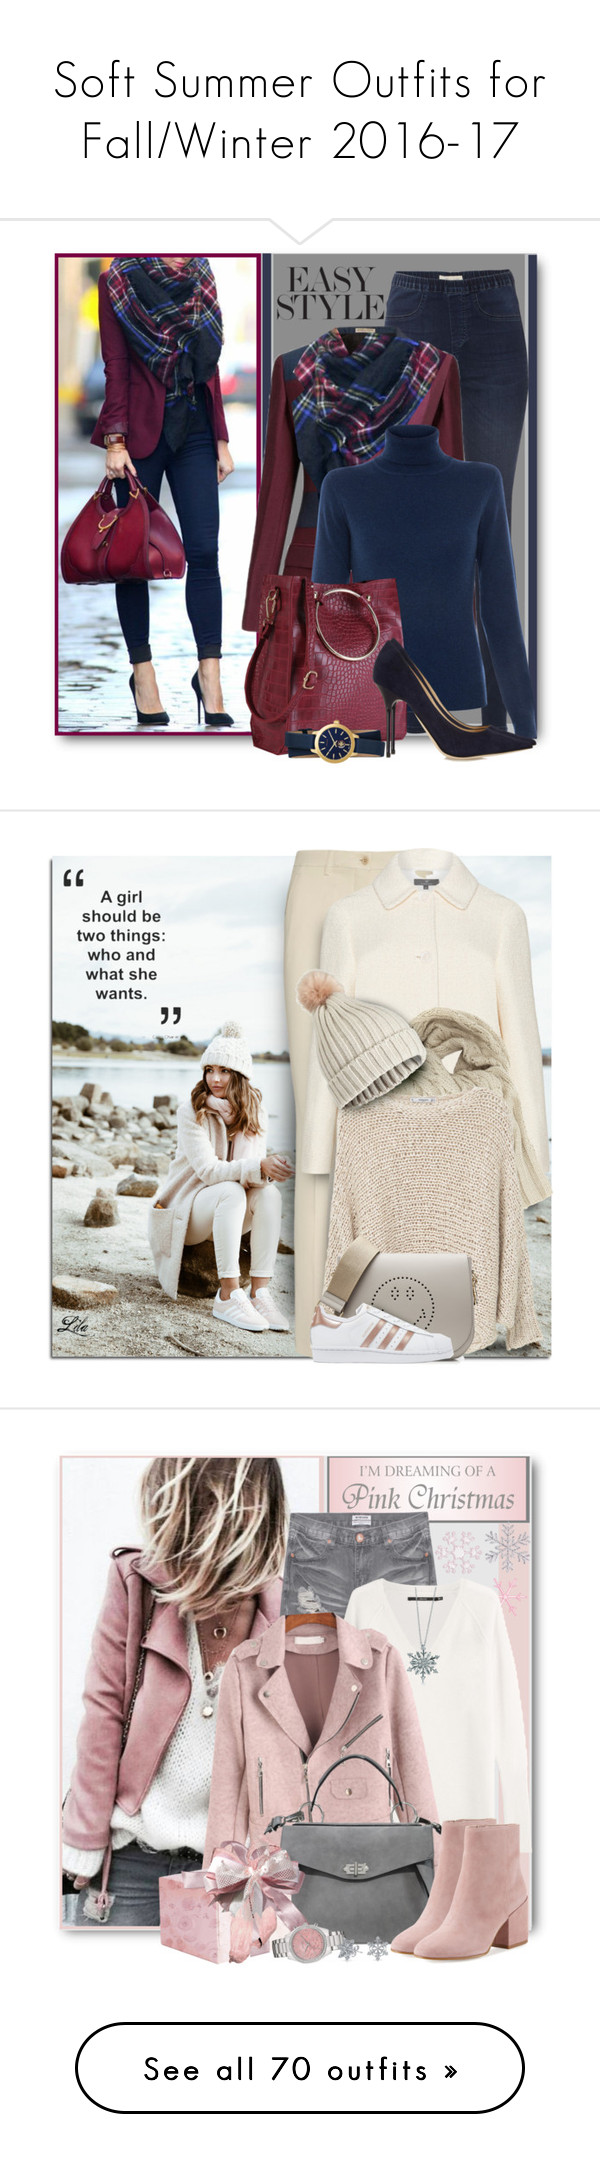 """""""Soft Summer Outfits for Fall/Winter 2016-17"""" by elbie3 ❤ liked on Polyvore featuring White Stuff, Bottega Veneta, Repeat Cashmere, Jimmy Choo, Tory Burch, Etro, John Lewis, MANGO, Miss Selfridge and Anya Hindmarch"""